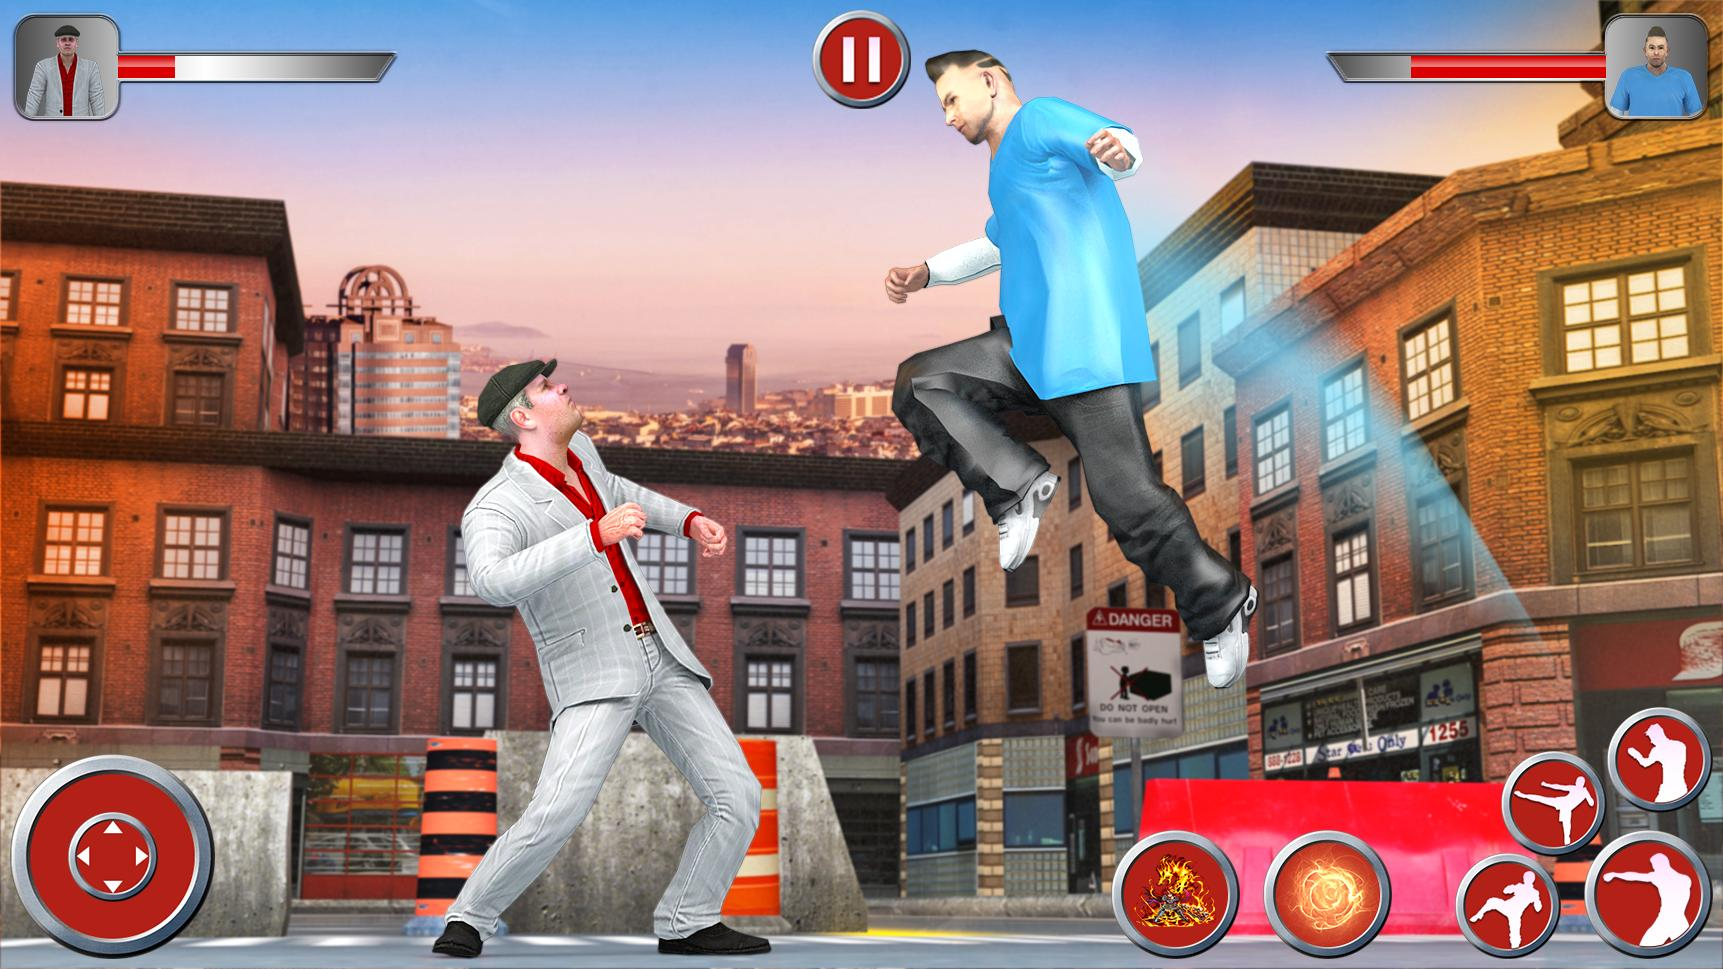 Superhero Karate Fighting Manager Fighter Kick For Android Apk